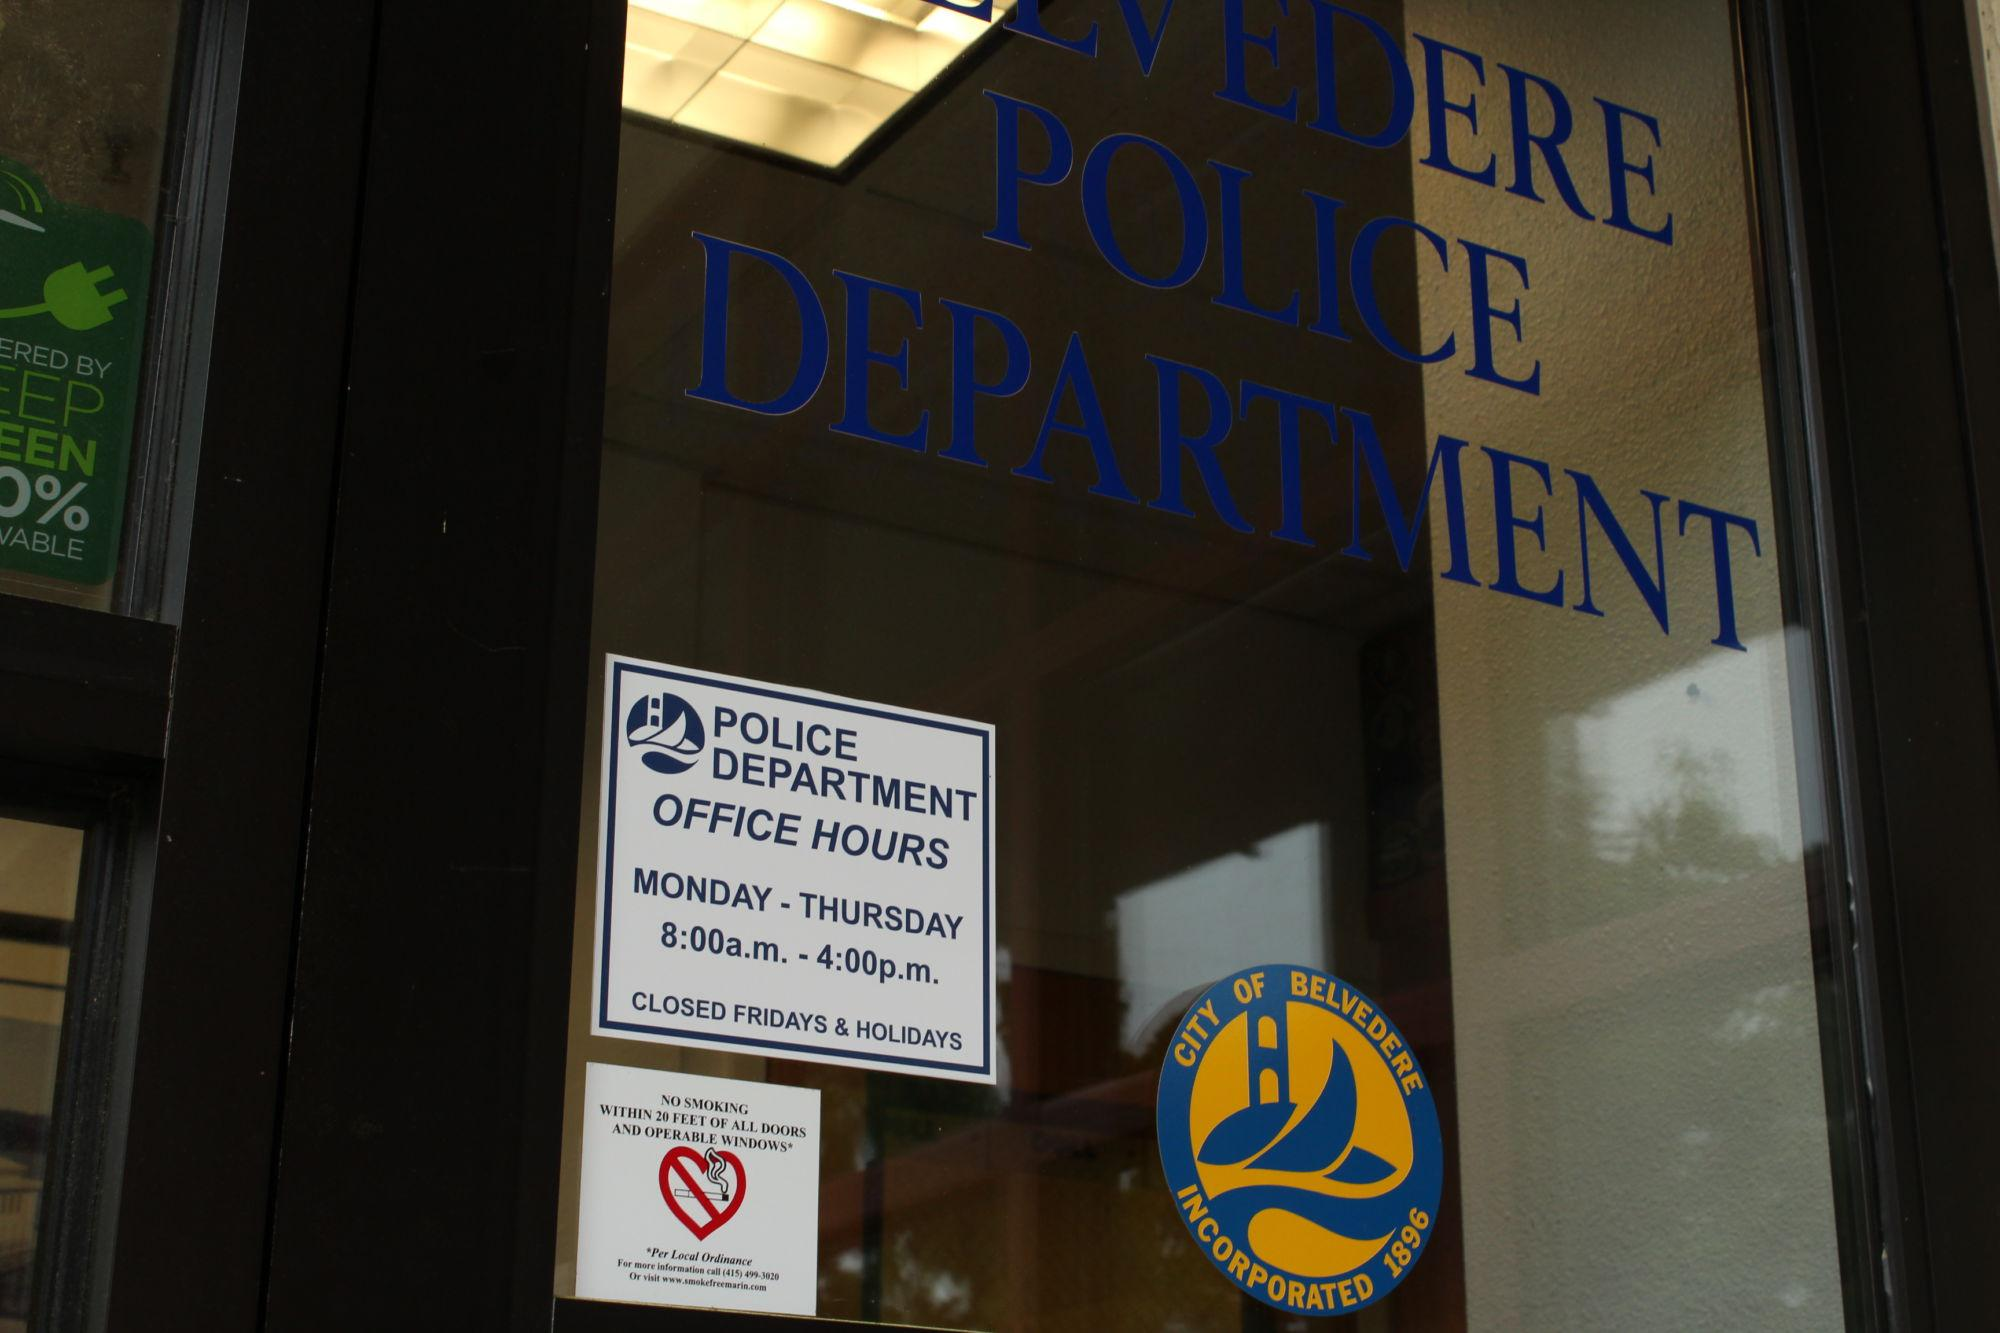 This 'No smoking within 20 feet of all doors and operable windows' sign on the front door of the Belvedere Police Department is very similar to those that will be going up near multifamily housing and public parks by October 10, 2017